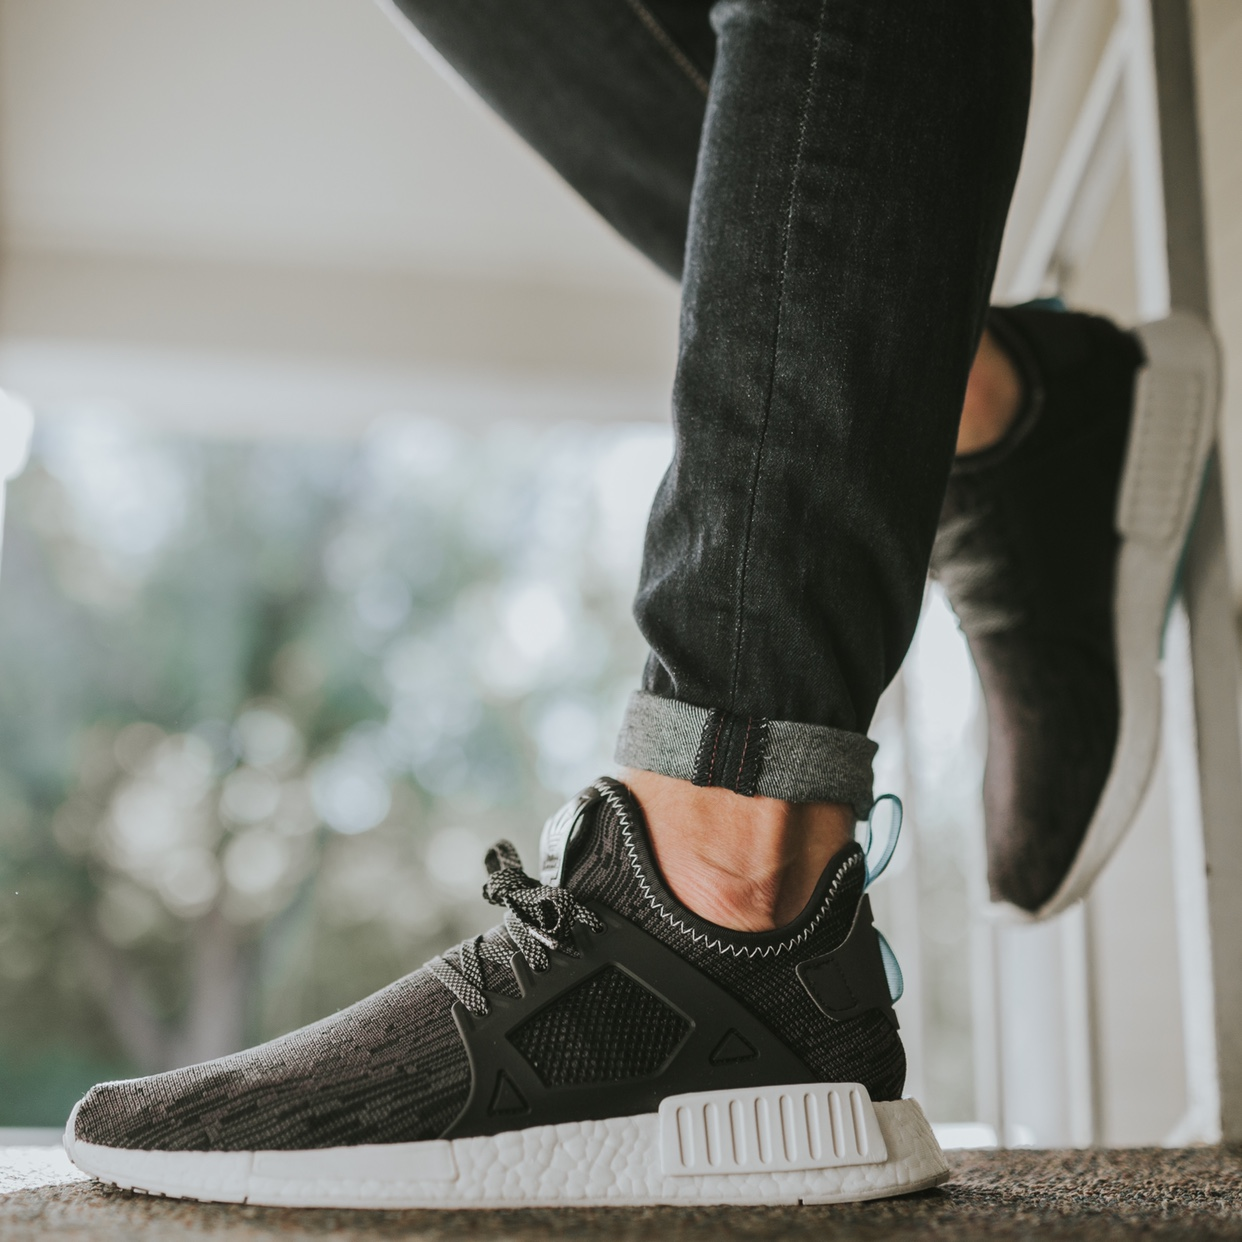 newest 80991 9b256 Adidas NMD XR1 (S32215) - 10.5 Great shoes, super... - Depop